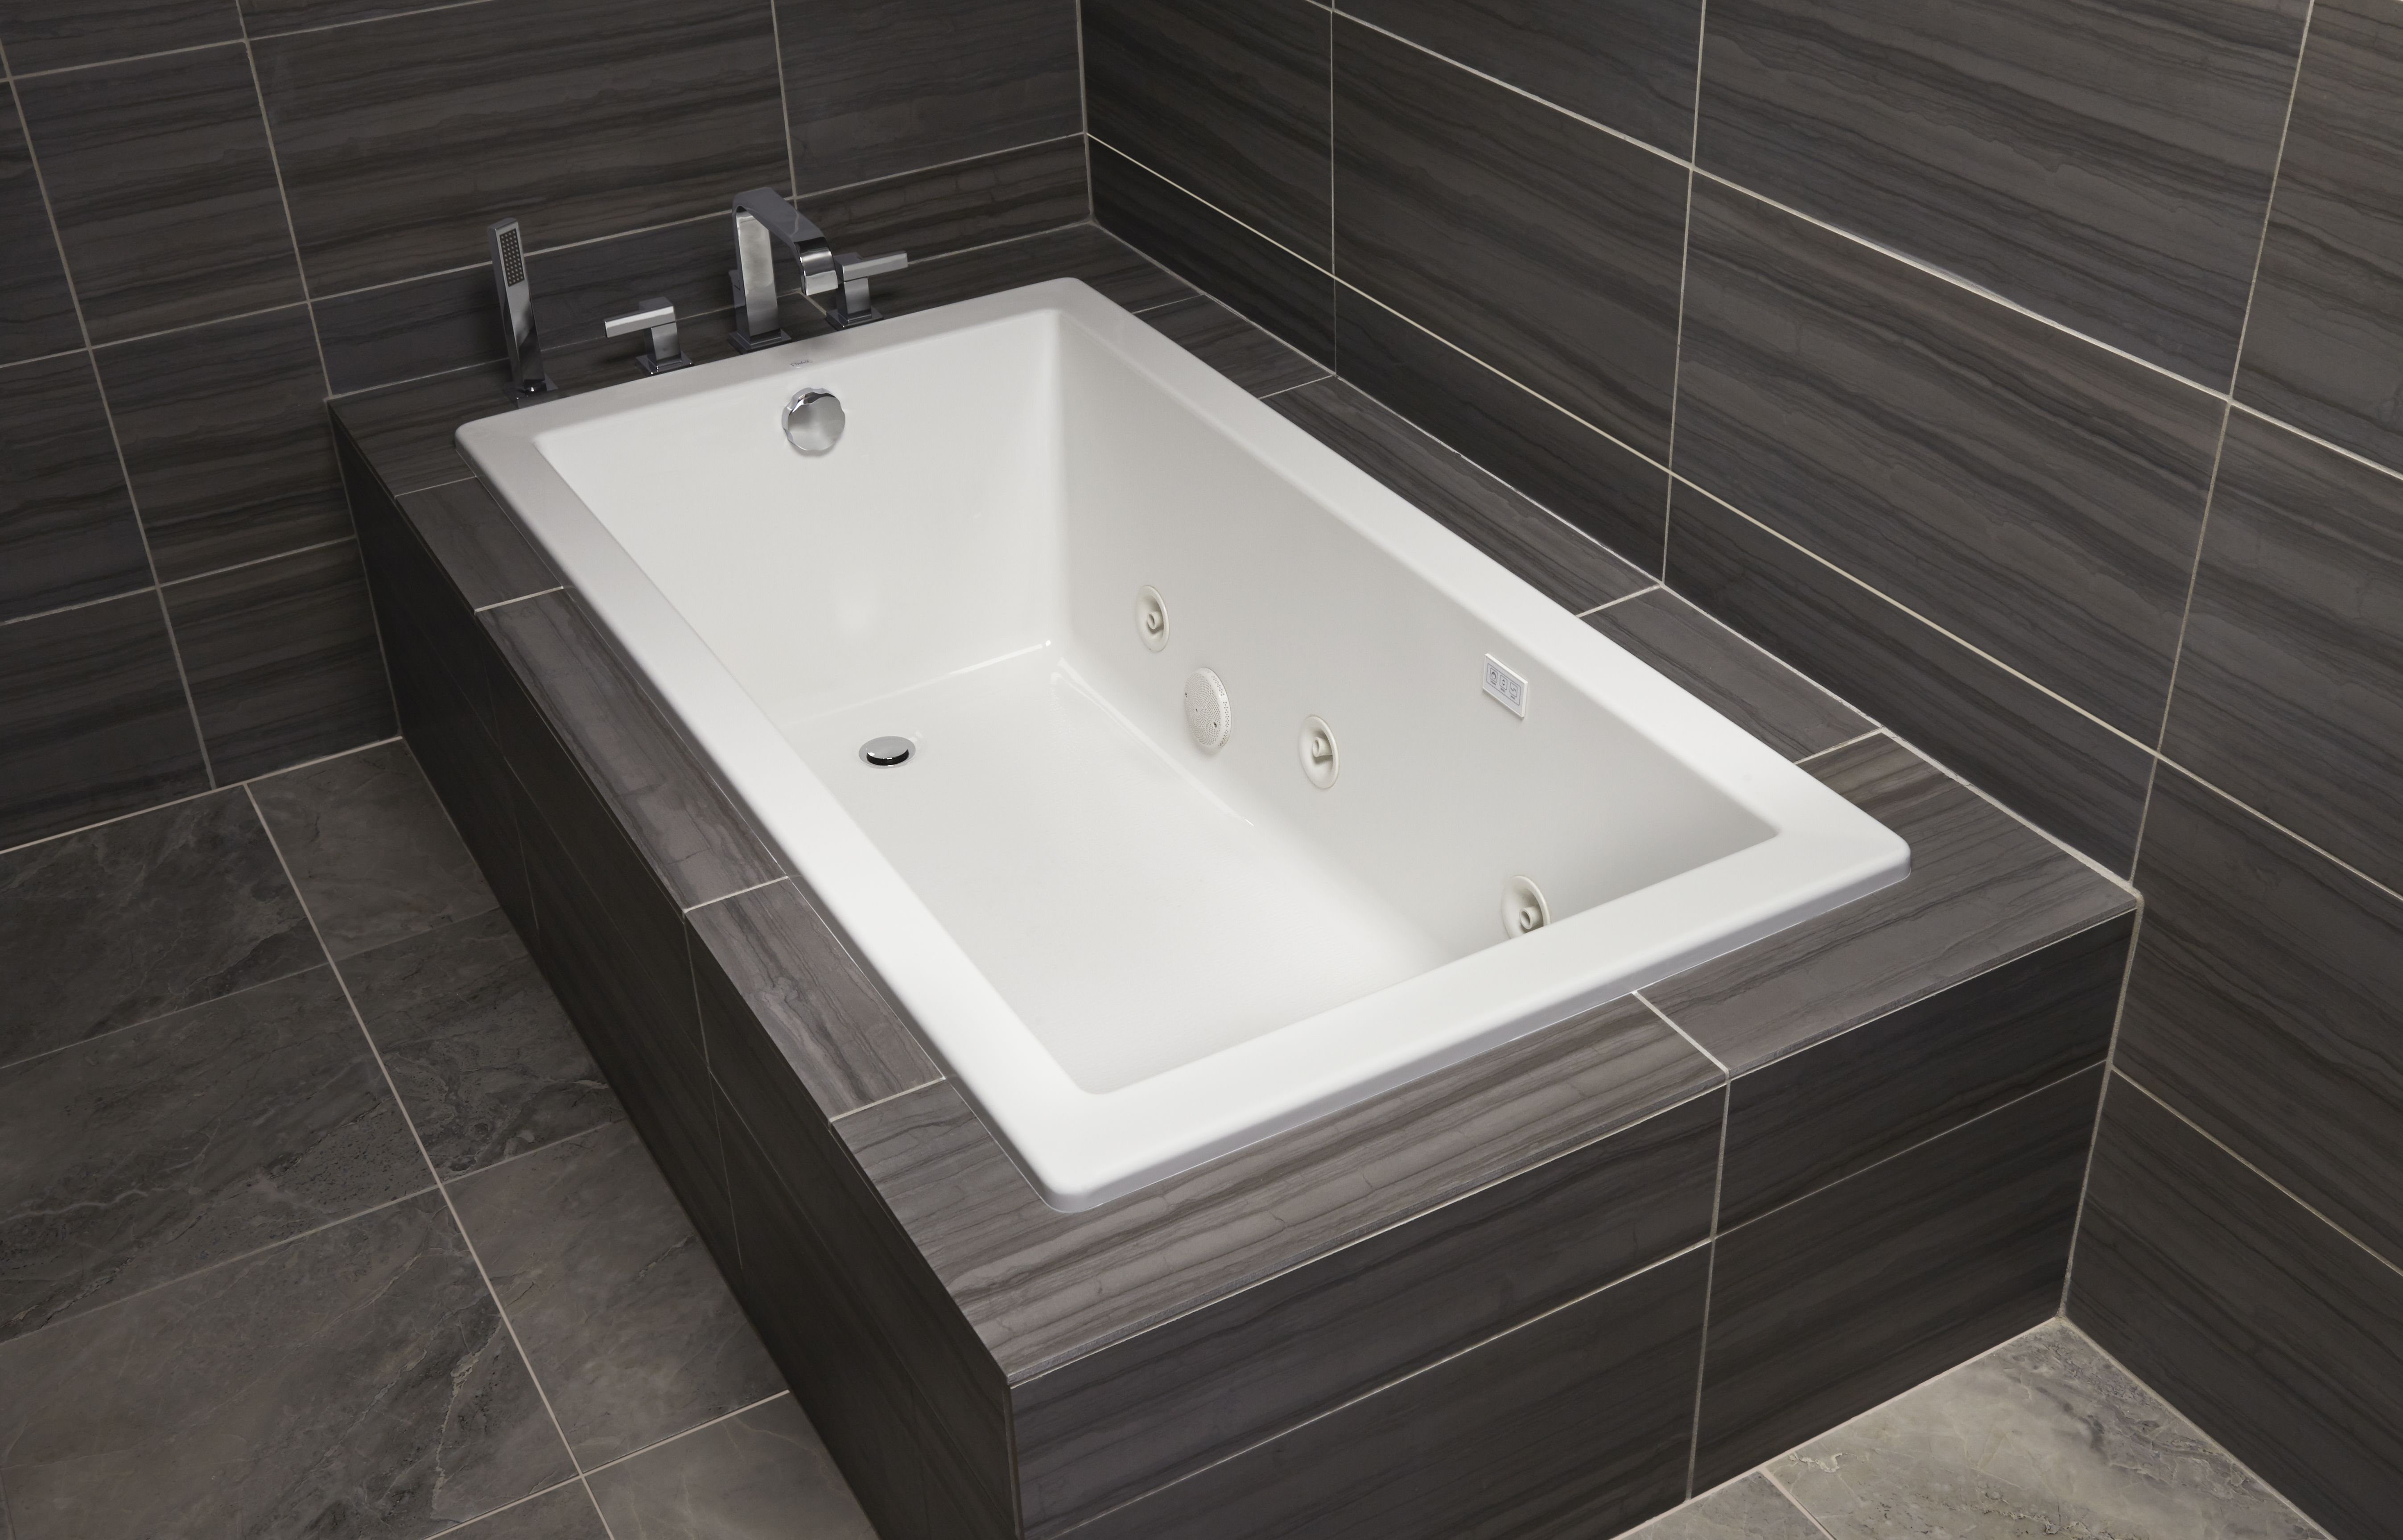 Clean lines and architectural styling give the Mirabelle Sitka tub ...